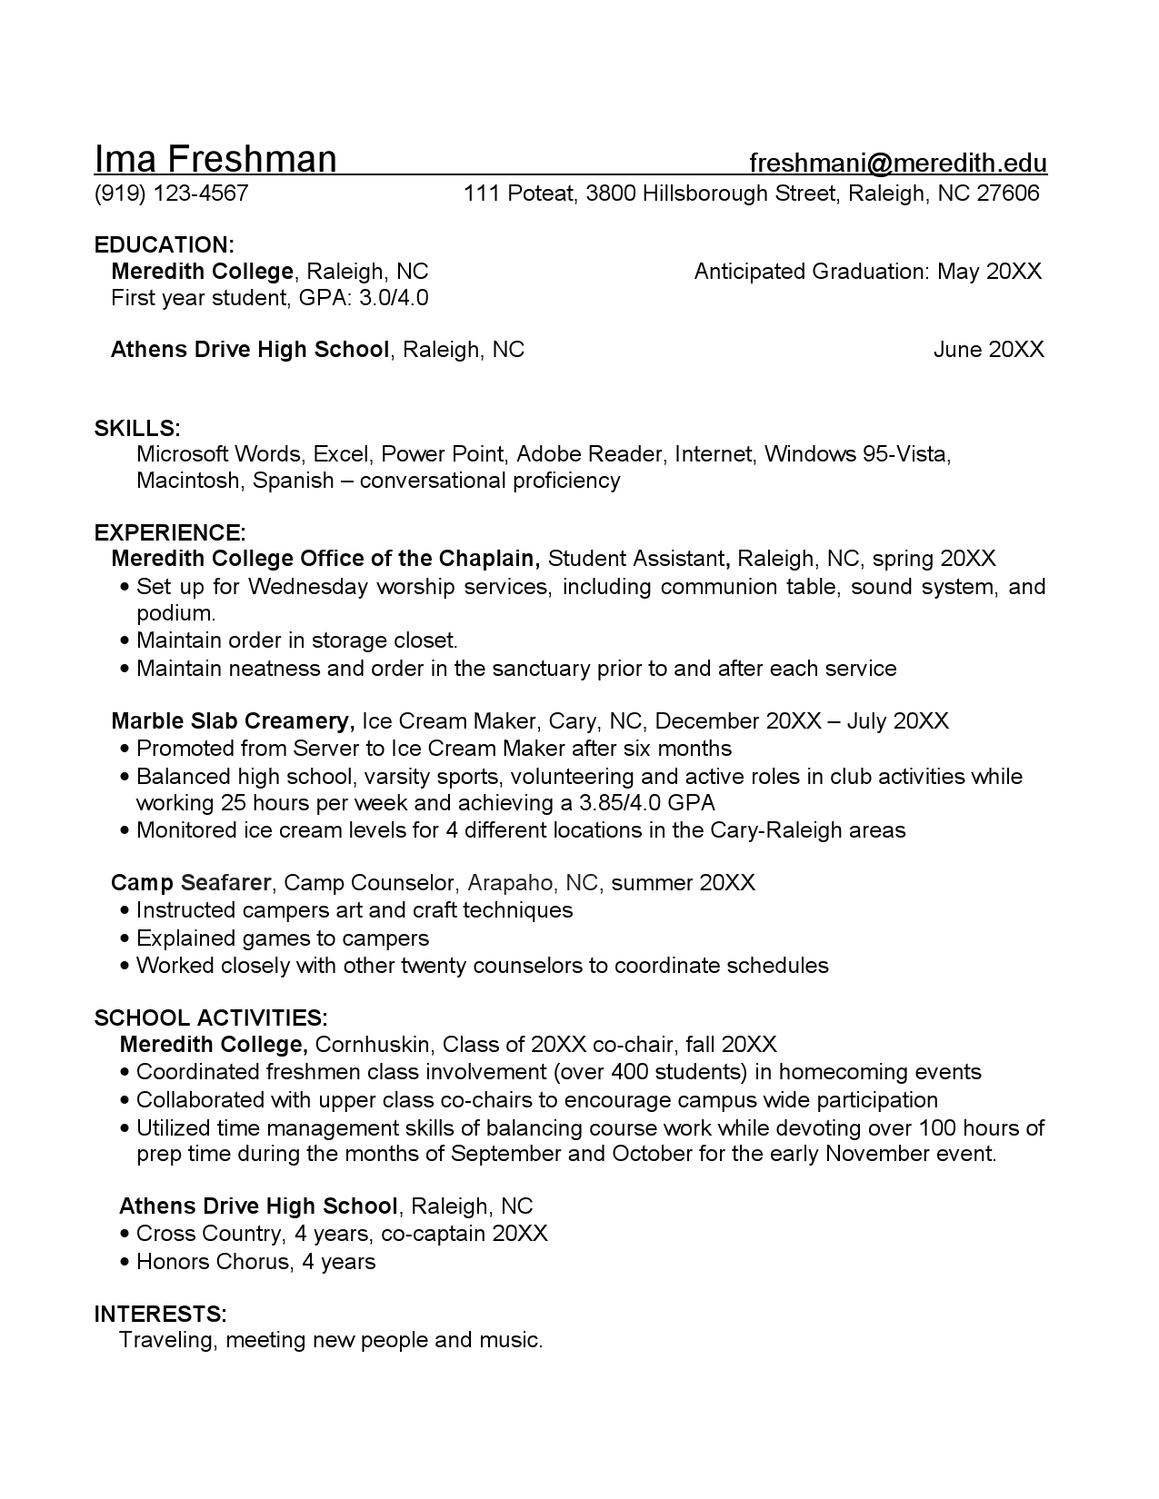 Freshman Resume Sample By Meredith College Academic Career Planning Issuu